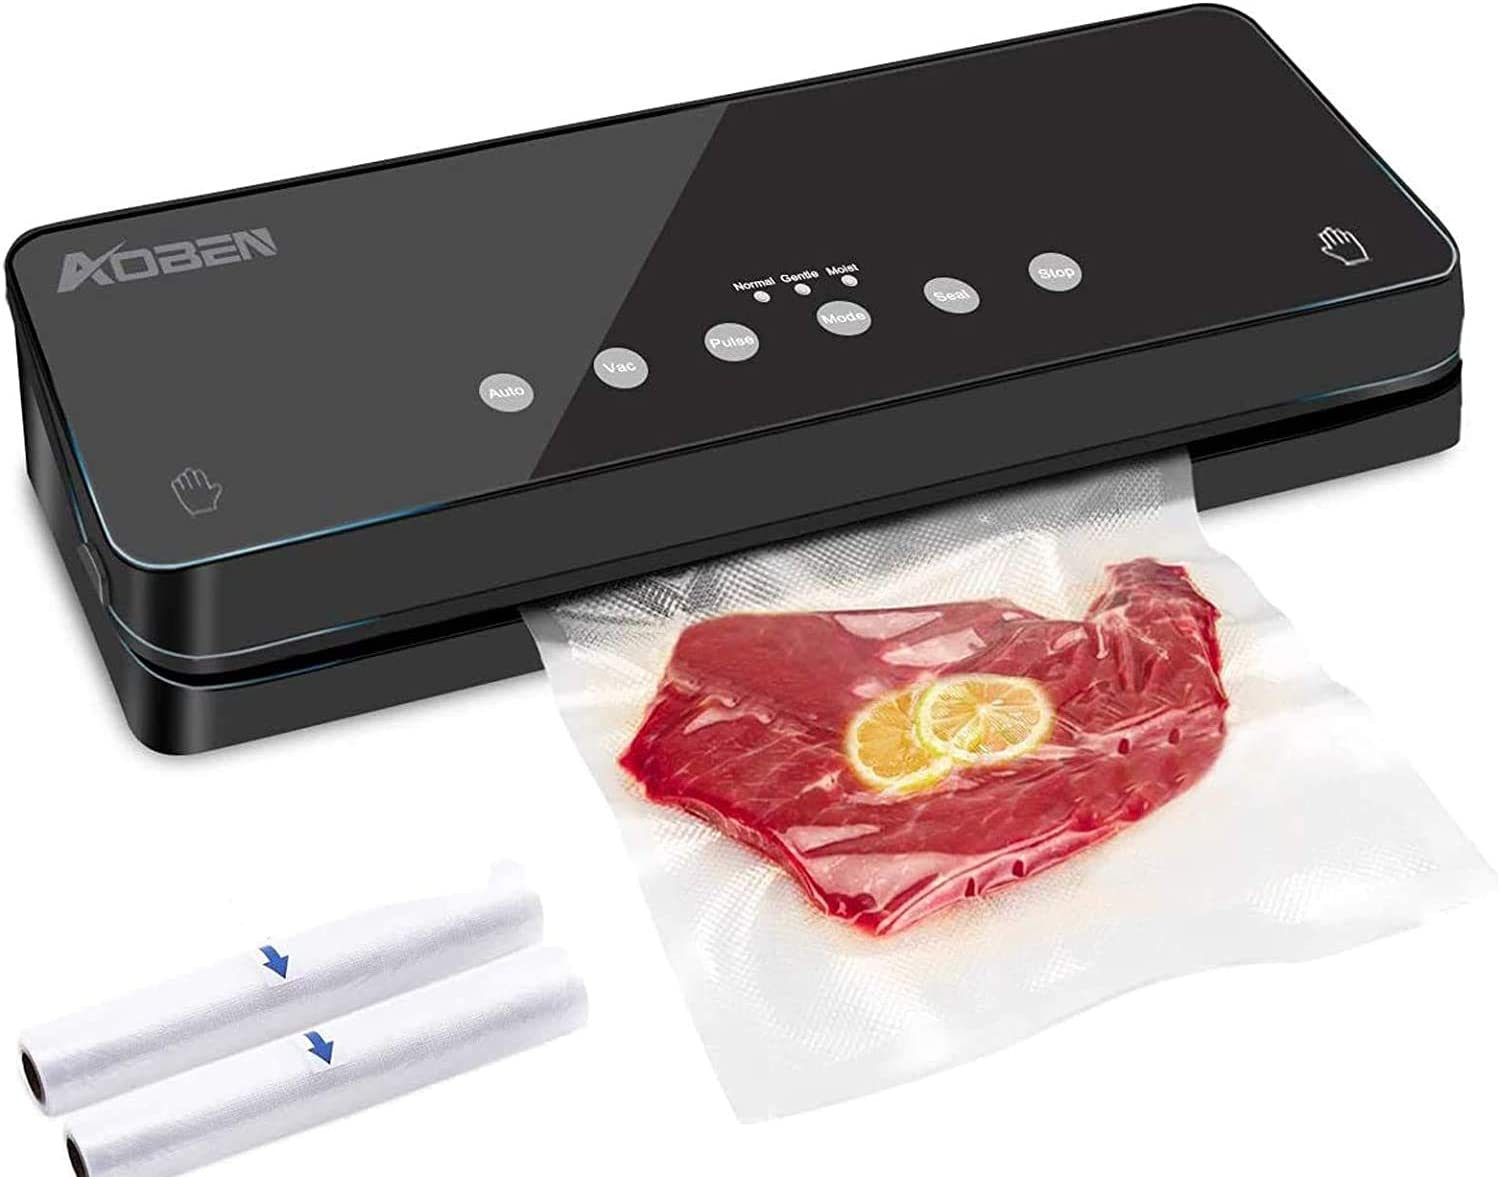 AOBEN Vacuum Sealer Machine,Automatic Food Sealer for Food Savers w/Starter Kit|Dry & Soft & Moist Food Modes|Led Indicator Lights|Separated Design Easy to Clean| Compact Design